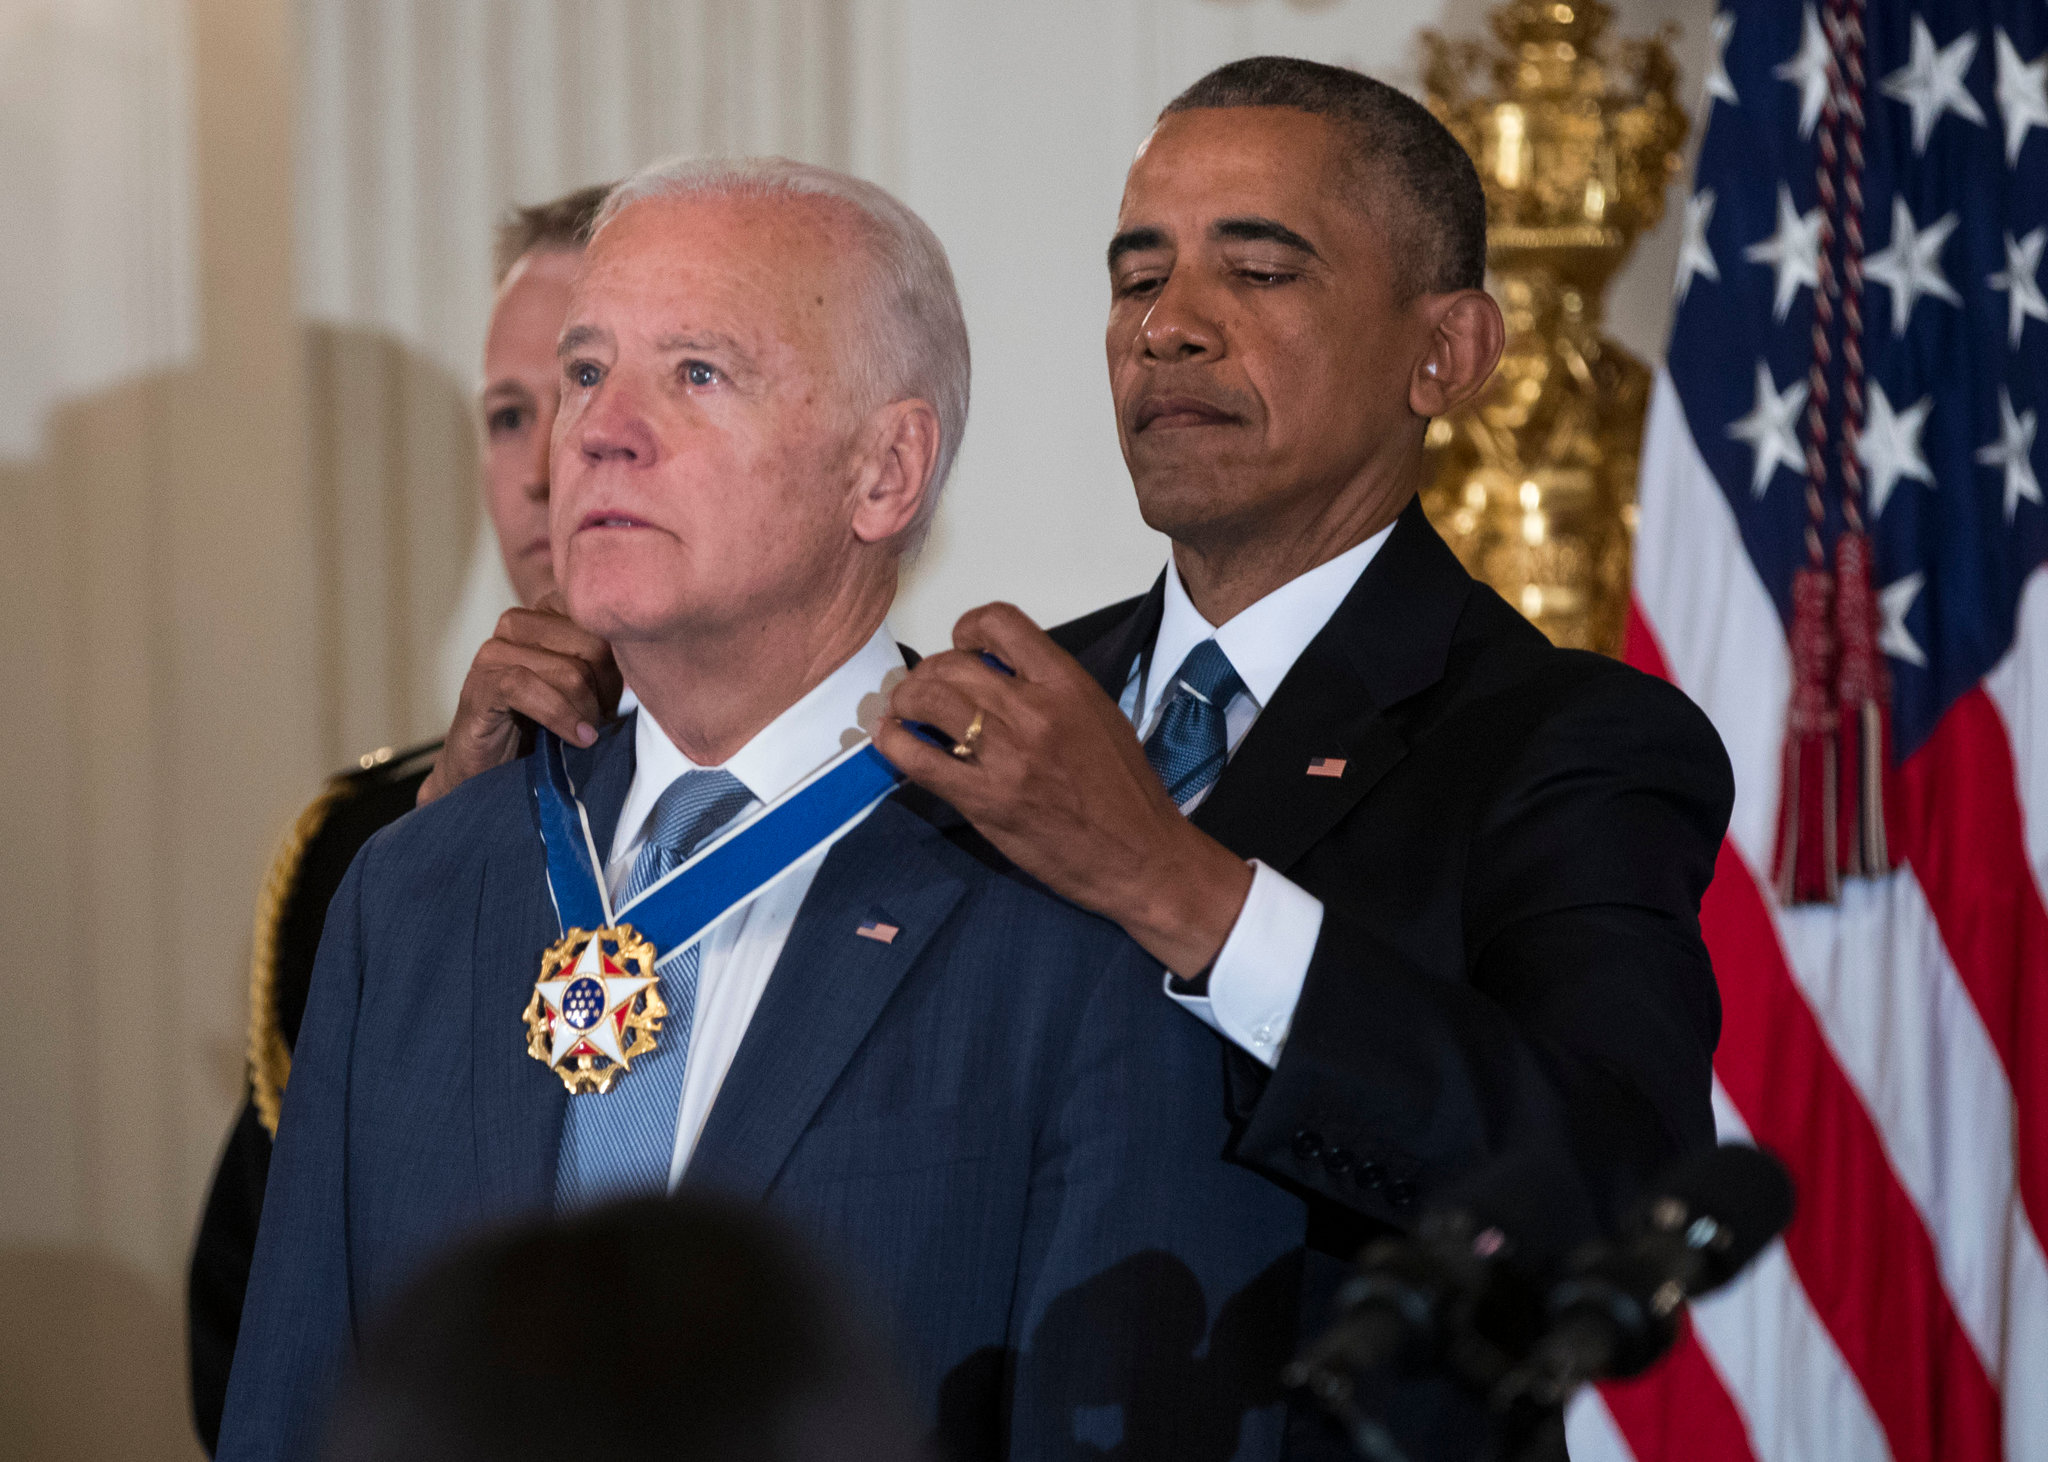 'Joe Biden Doesn't Have It': Obama Tells It Straight As 2020 Candidates Seek Wisdom…